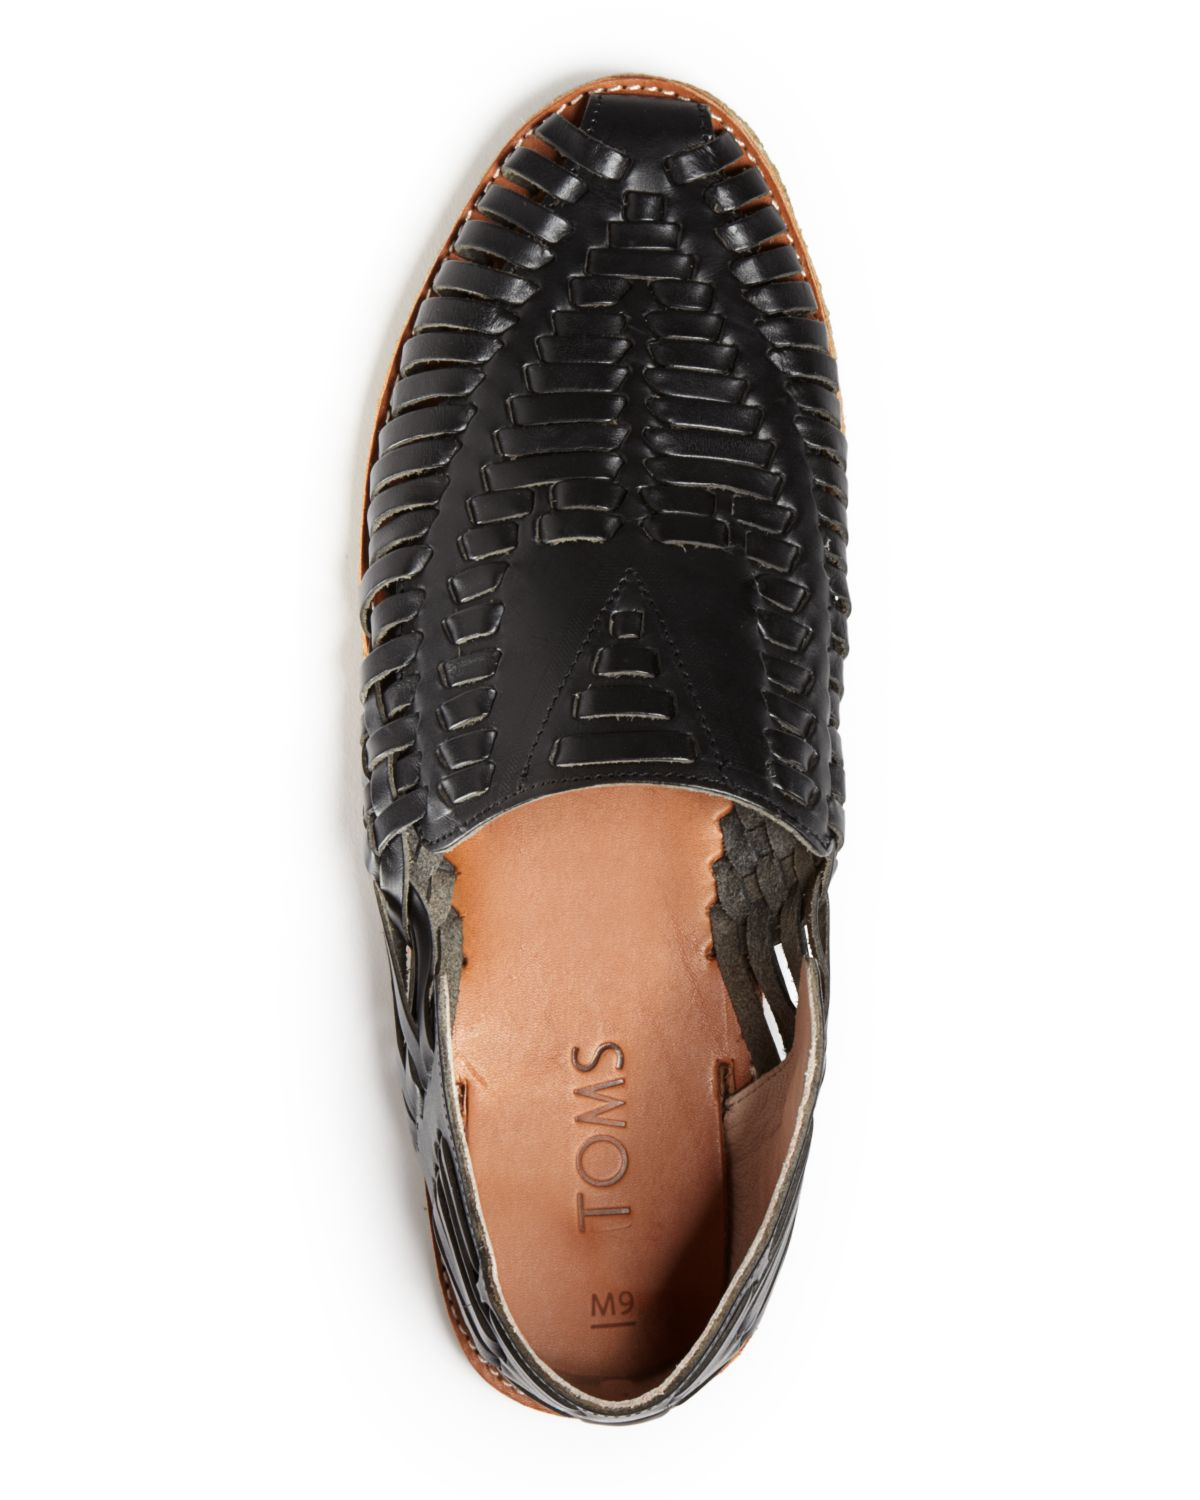 918e59dc990e3 TOMS Huarache Woven Leather Loafers in Black for Men - Lyst